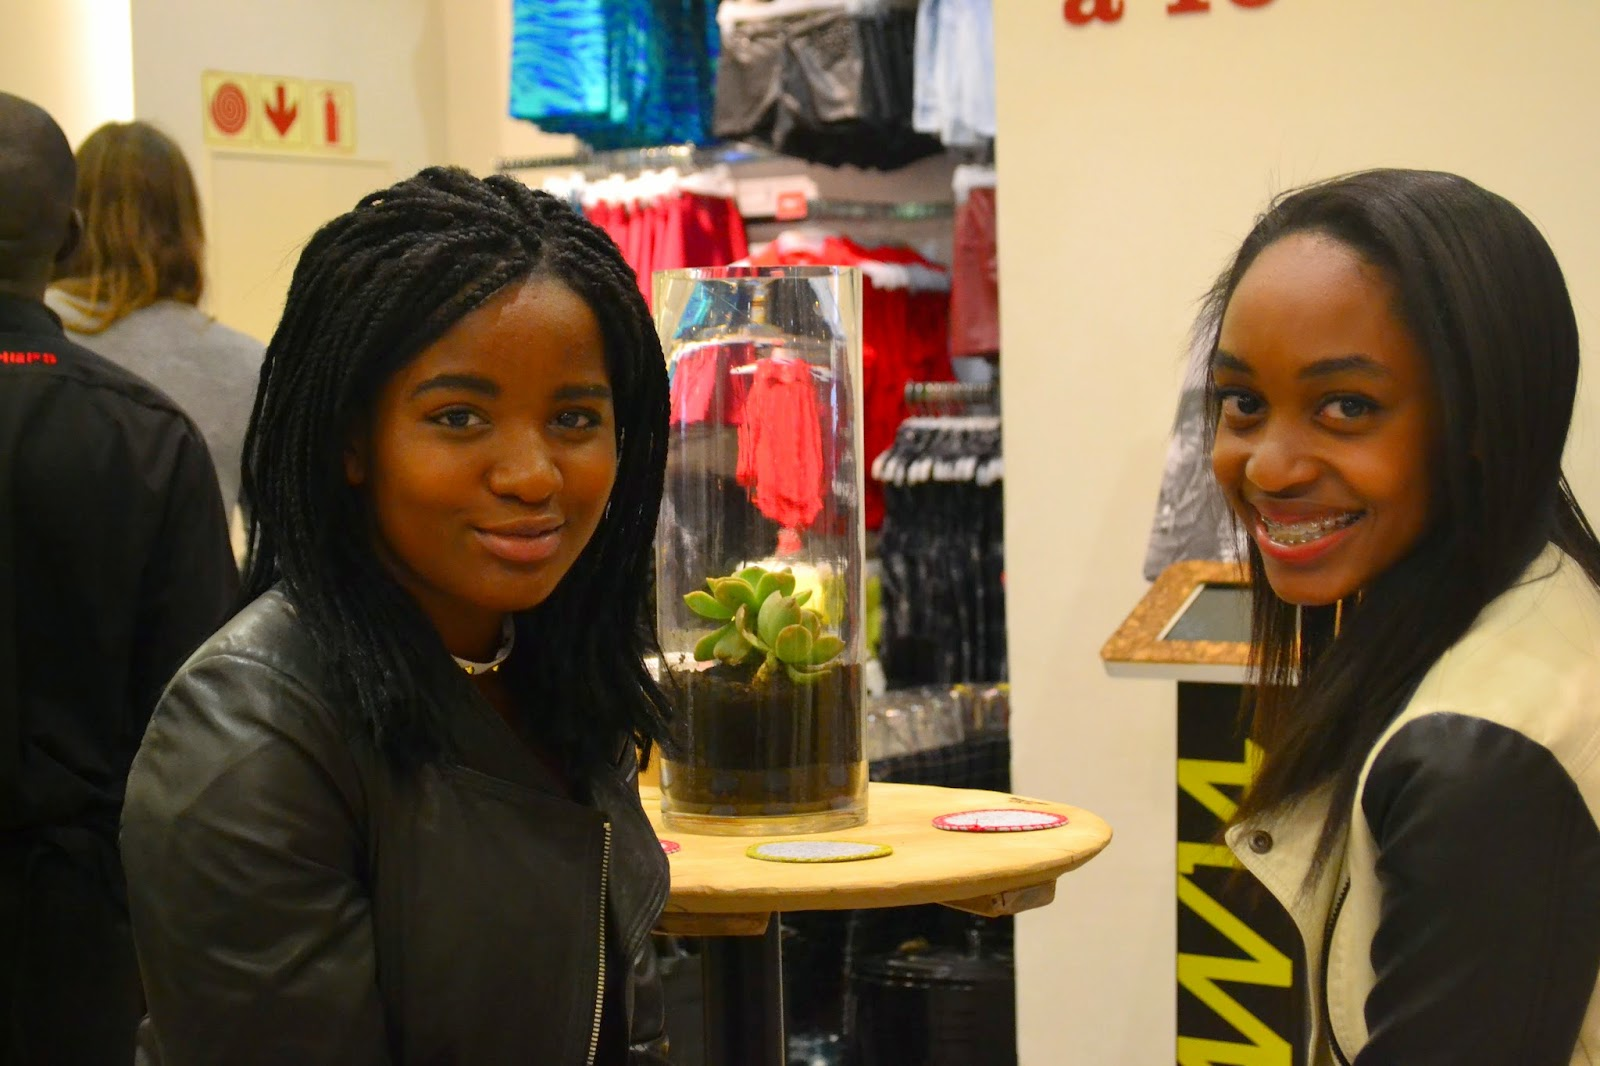 south african teen bloggers, khensani and khensani